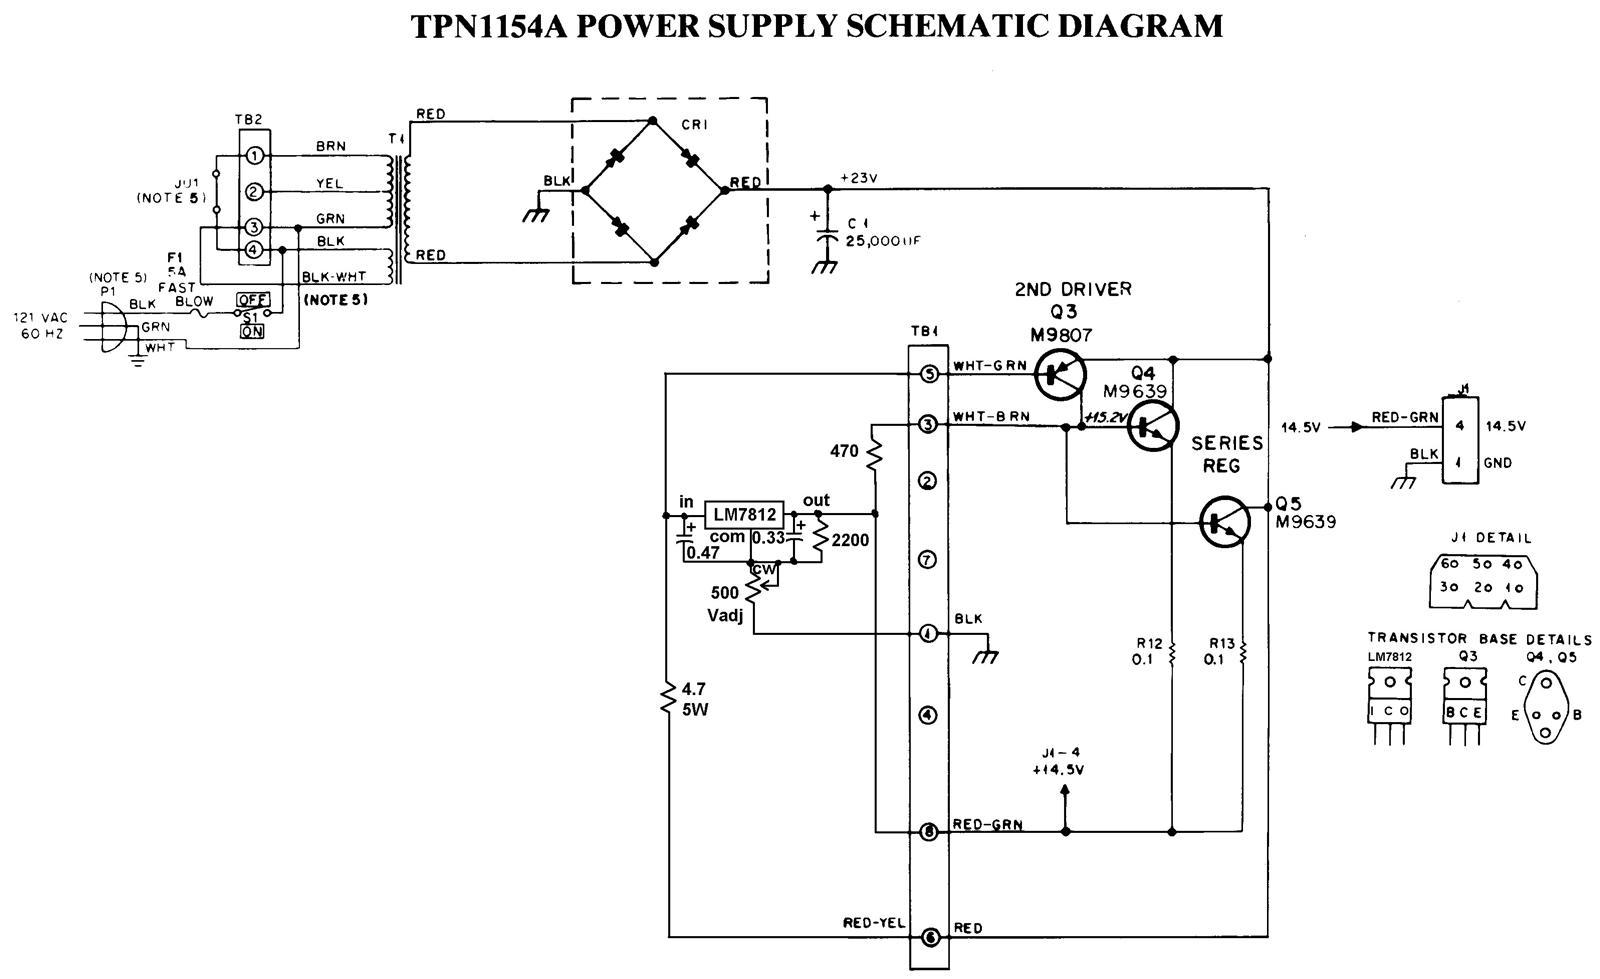 new sch improving the motorola tpn1154 and tpn1136 desktop power supplies Basic Electrical Wiring Diagrams at mifinder.co